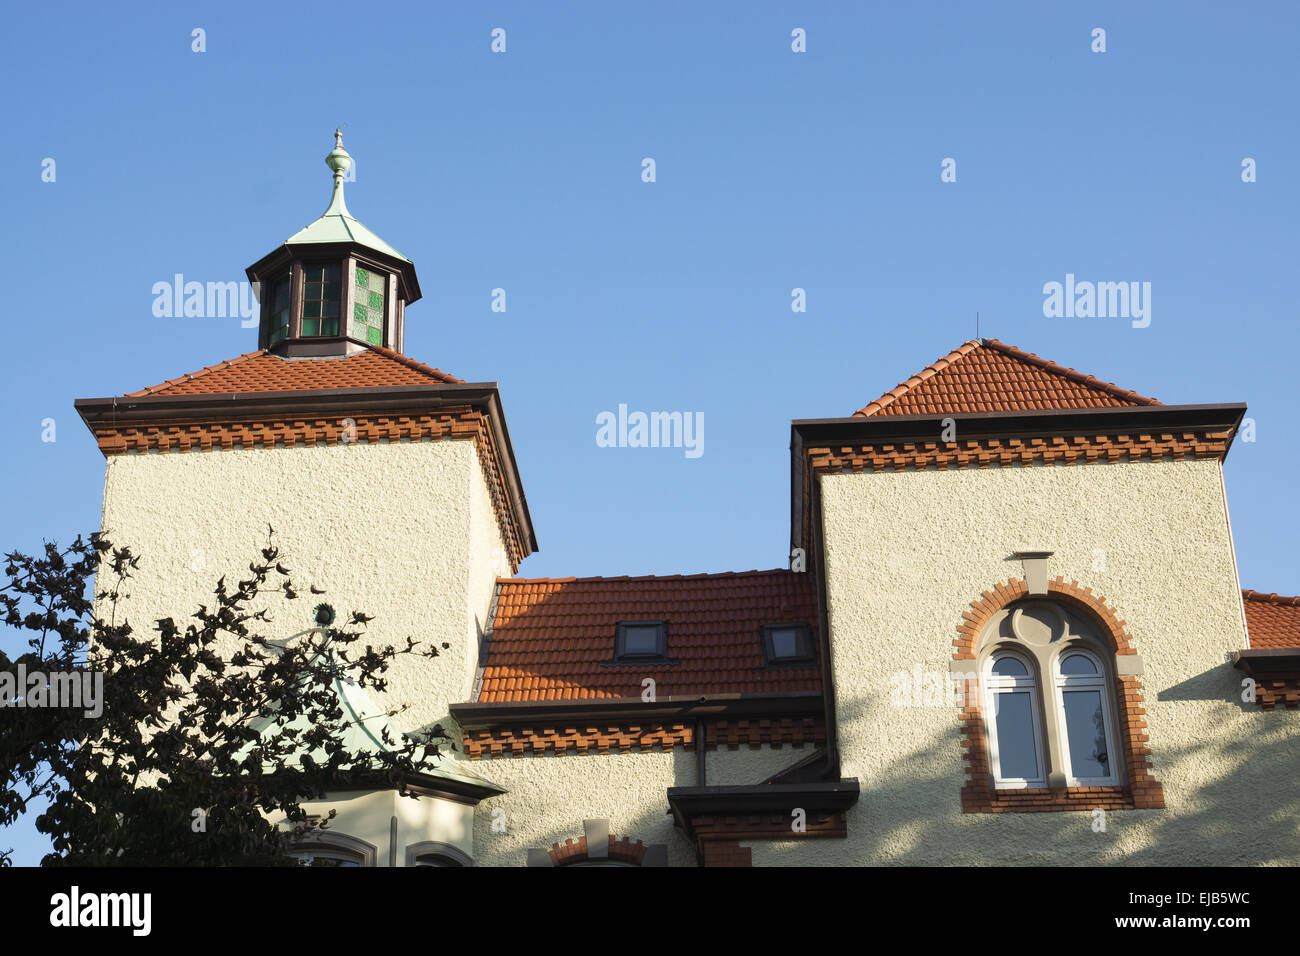 Willy-Brandt-House in Recklinghausen, Germany - Stock Image